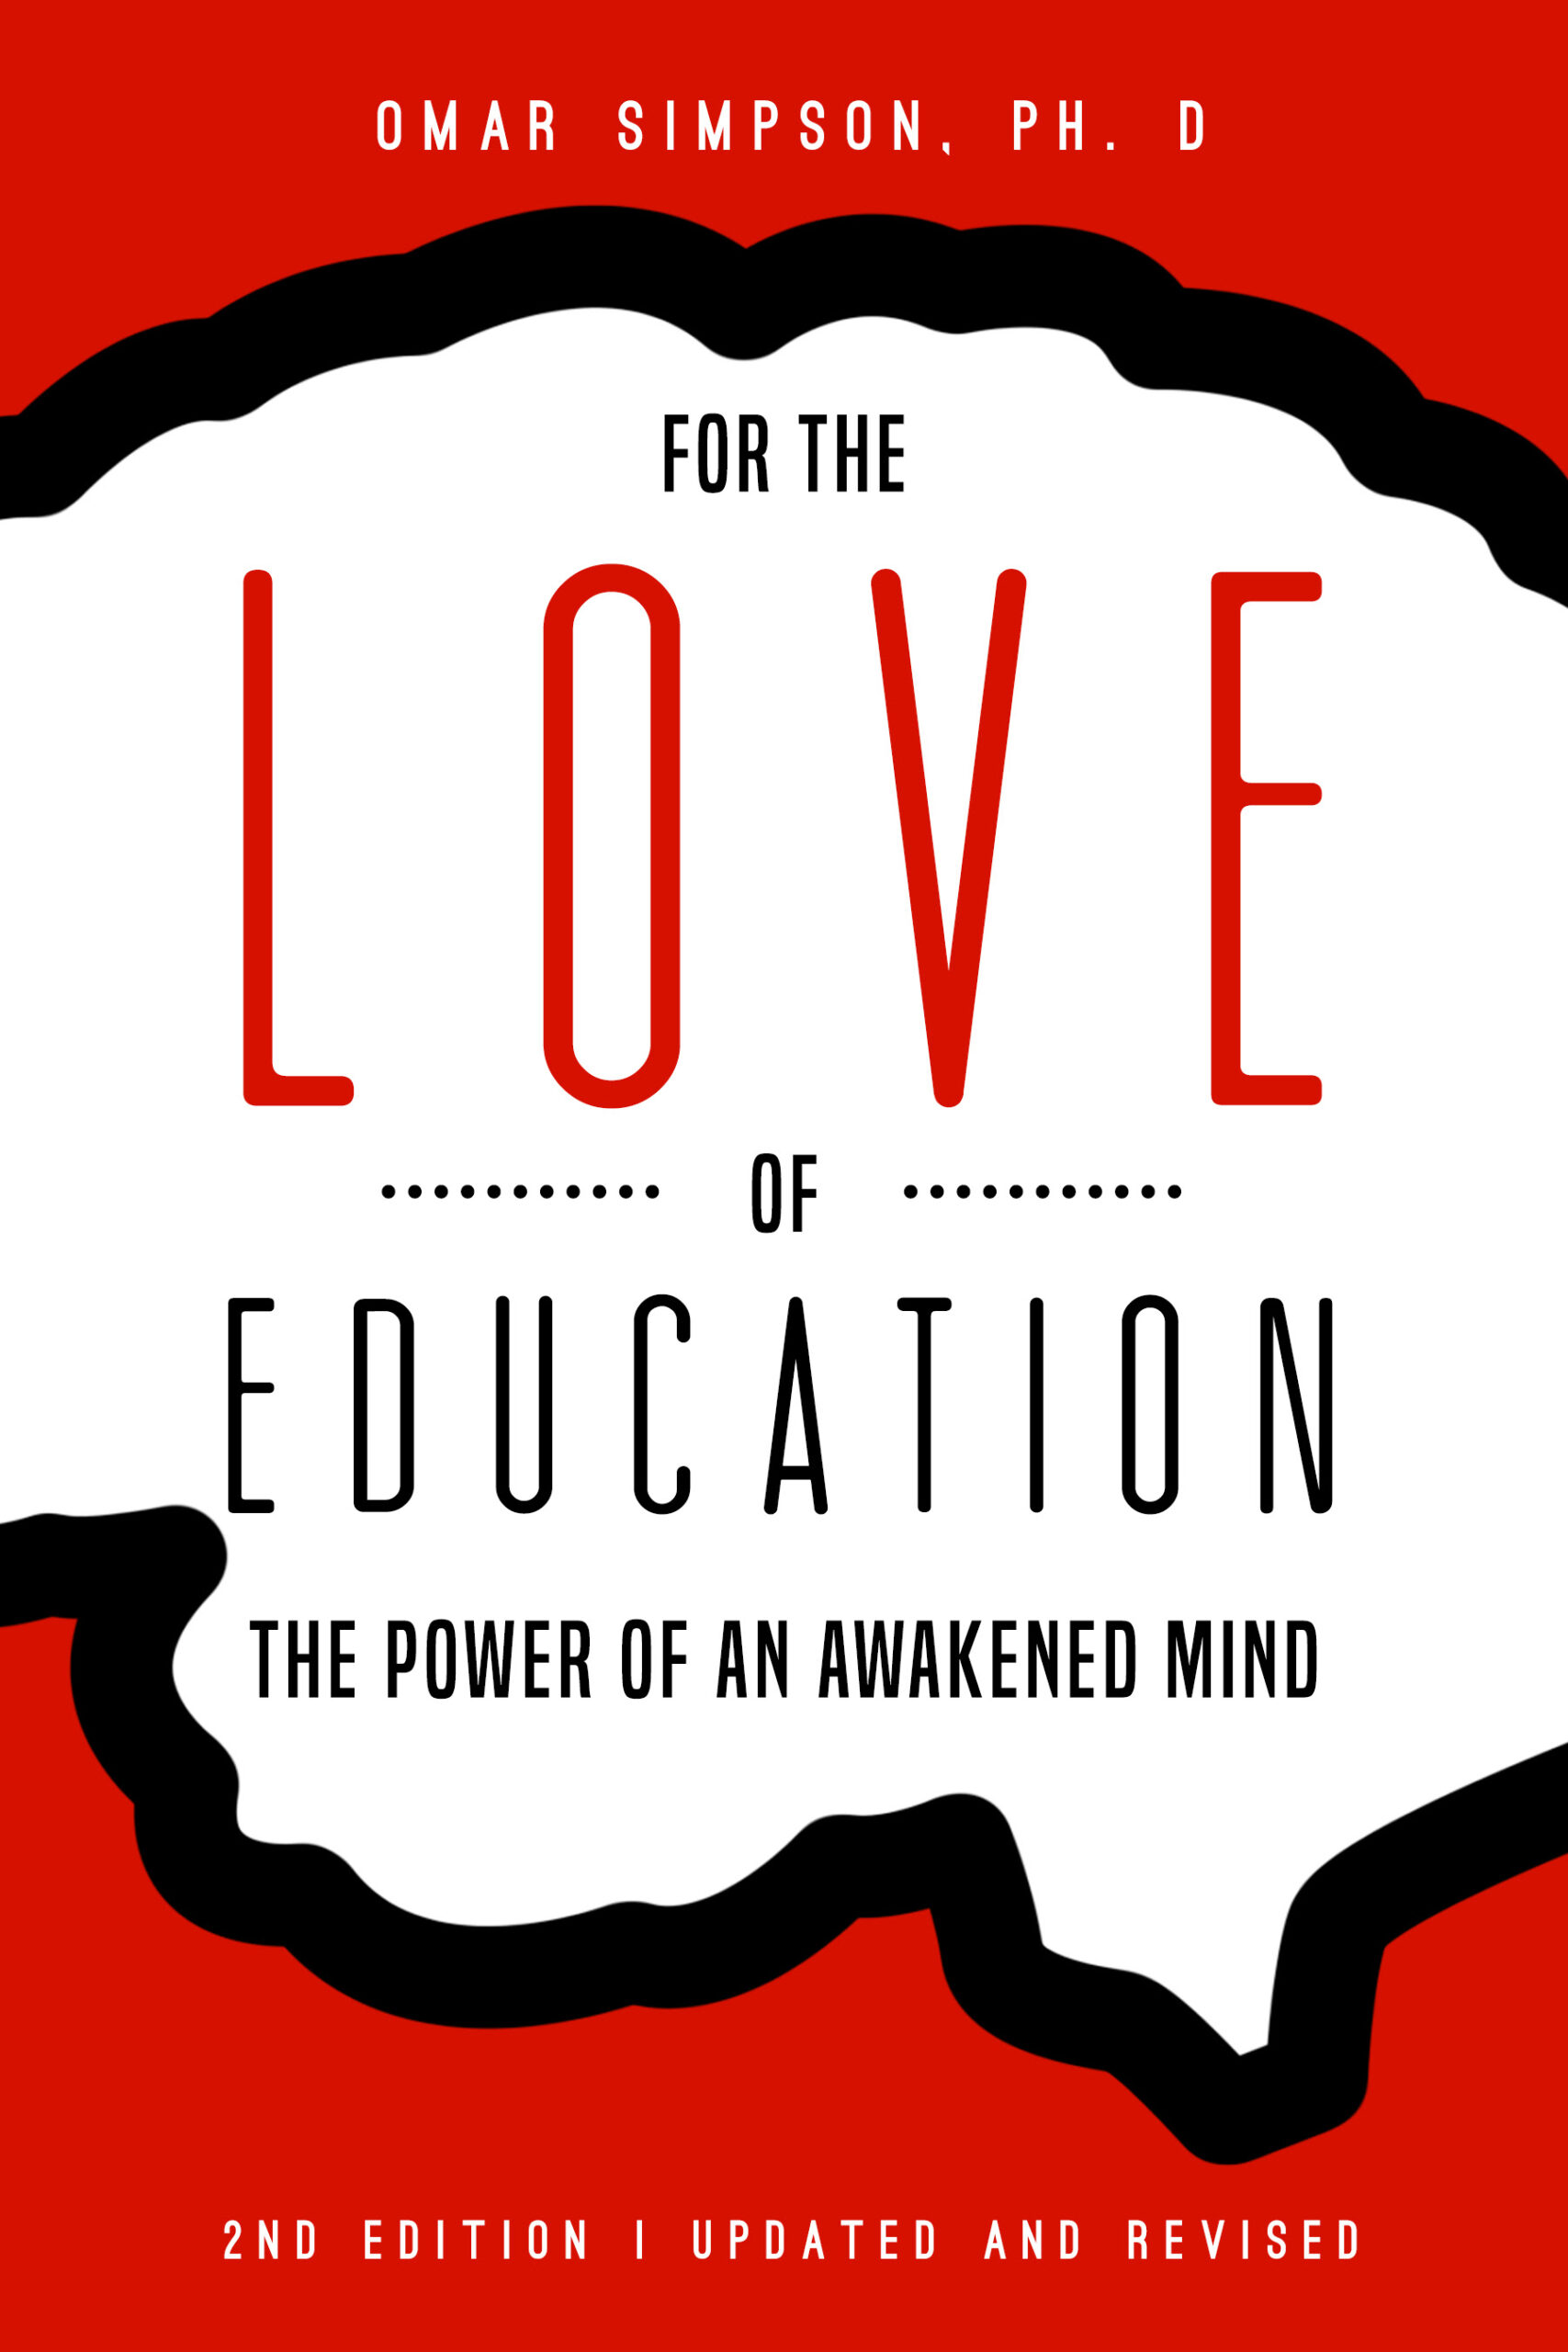 For The Love of Education